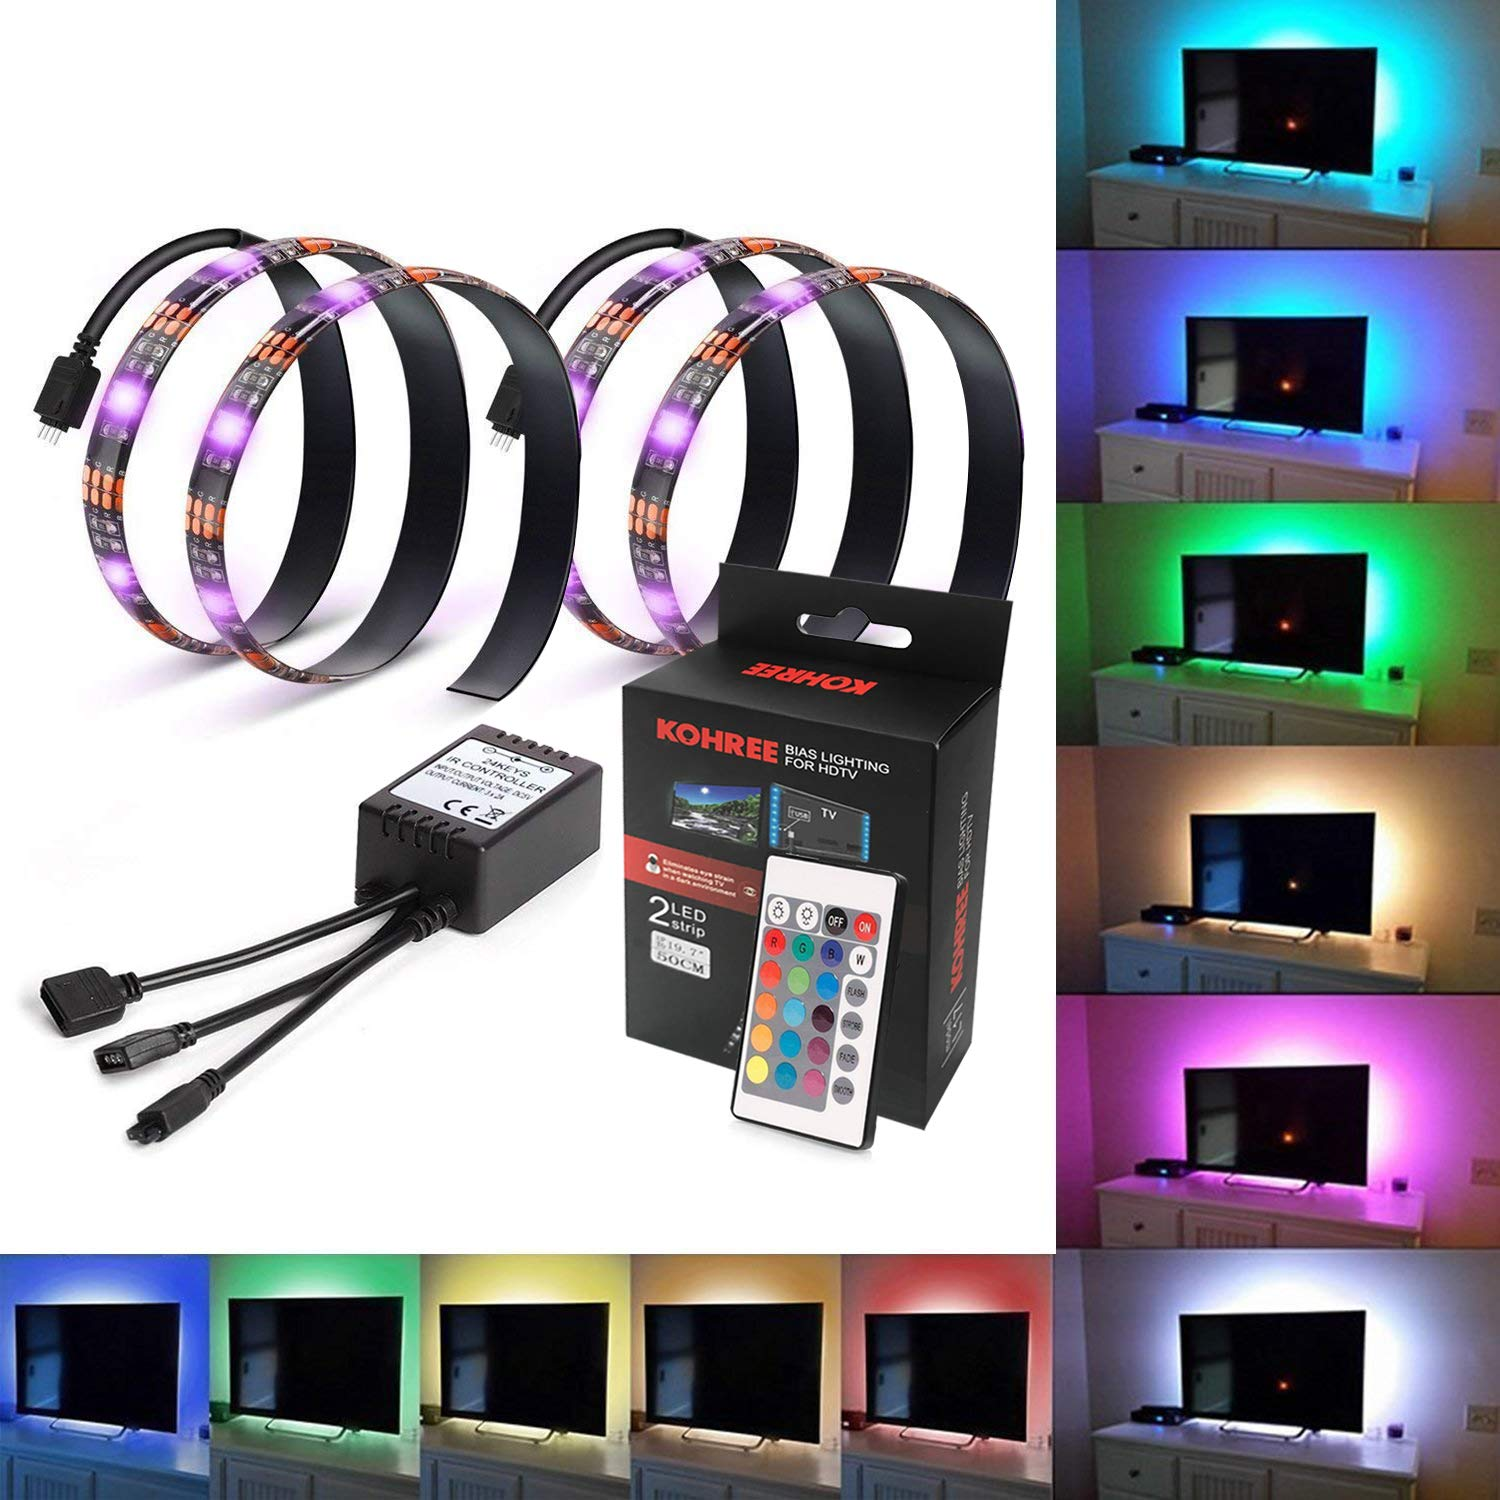 Kohree Tv Backlight Bias Hdtv Usb Powered 2 Rgb Multi Color Led Fader Strip With Remote Control Home Theater Accent Lighting Kits Reduce Eye Fatigue And Increase